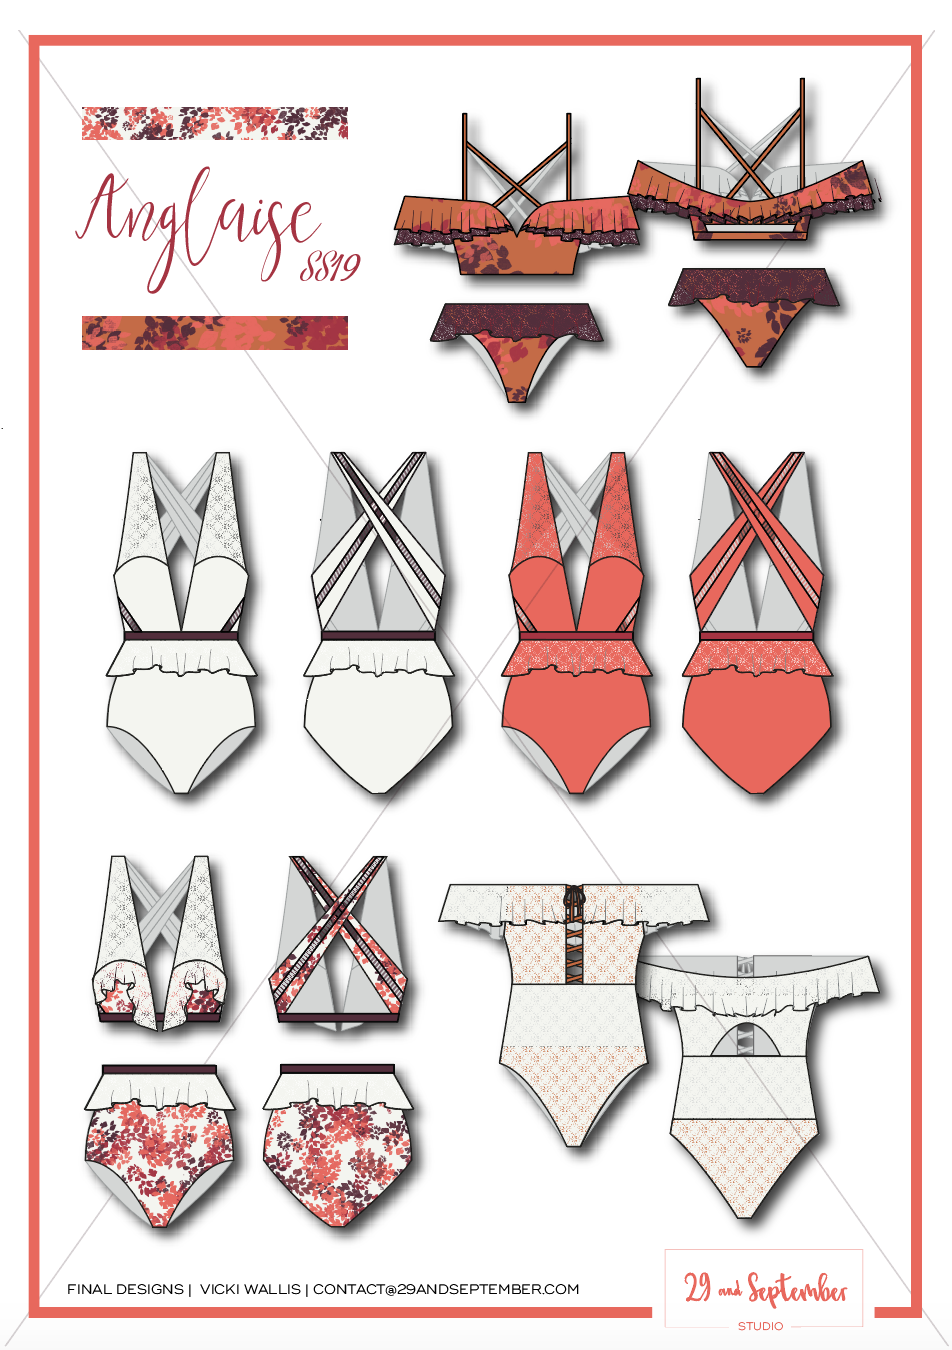 Swimwear inspiration | technical drawings for swimwear